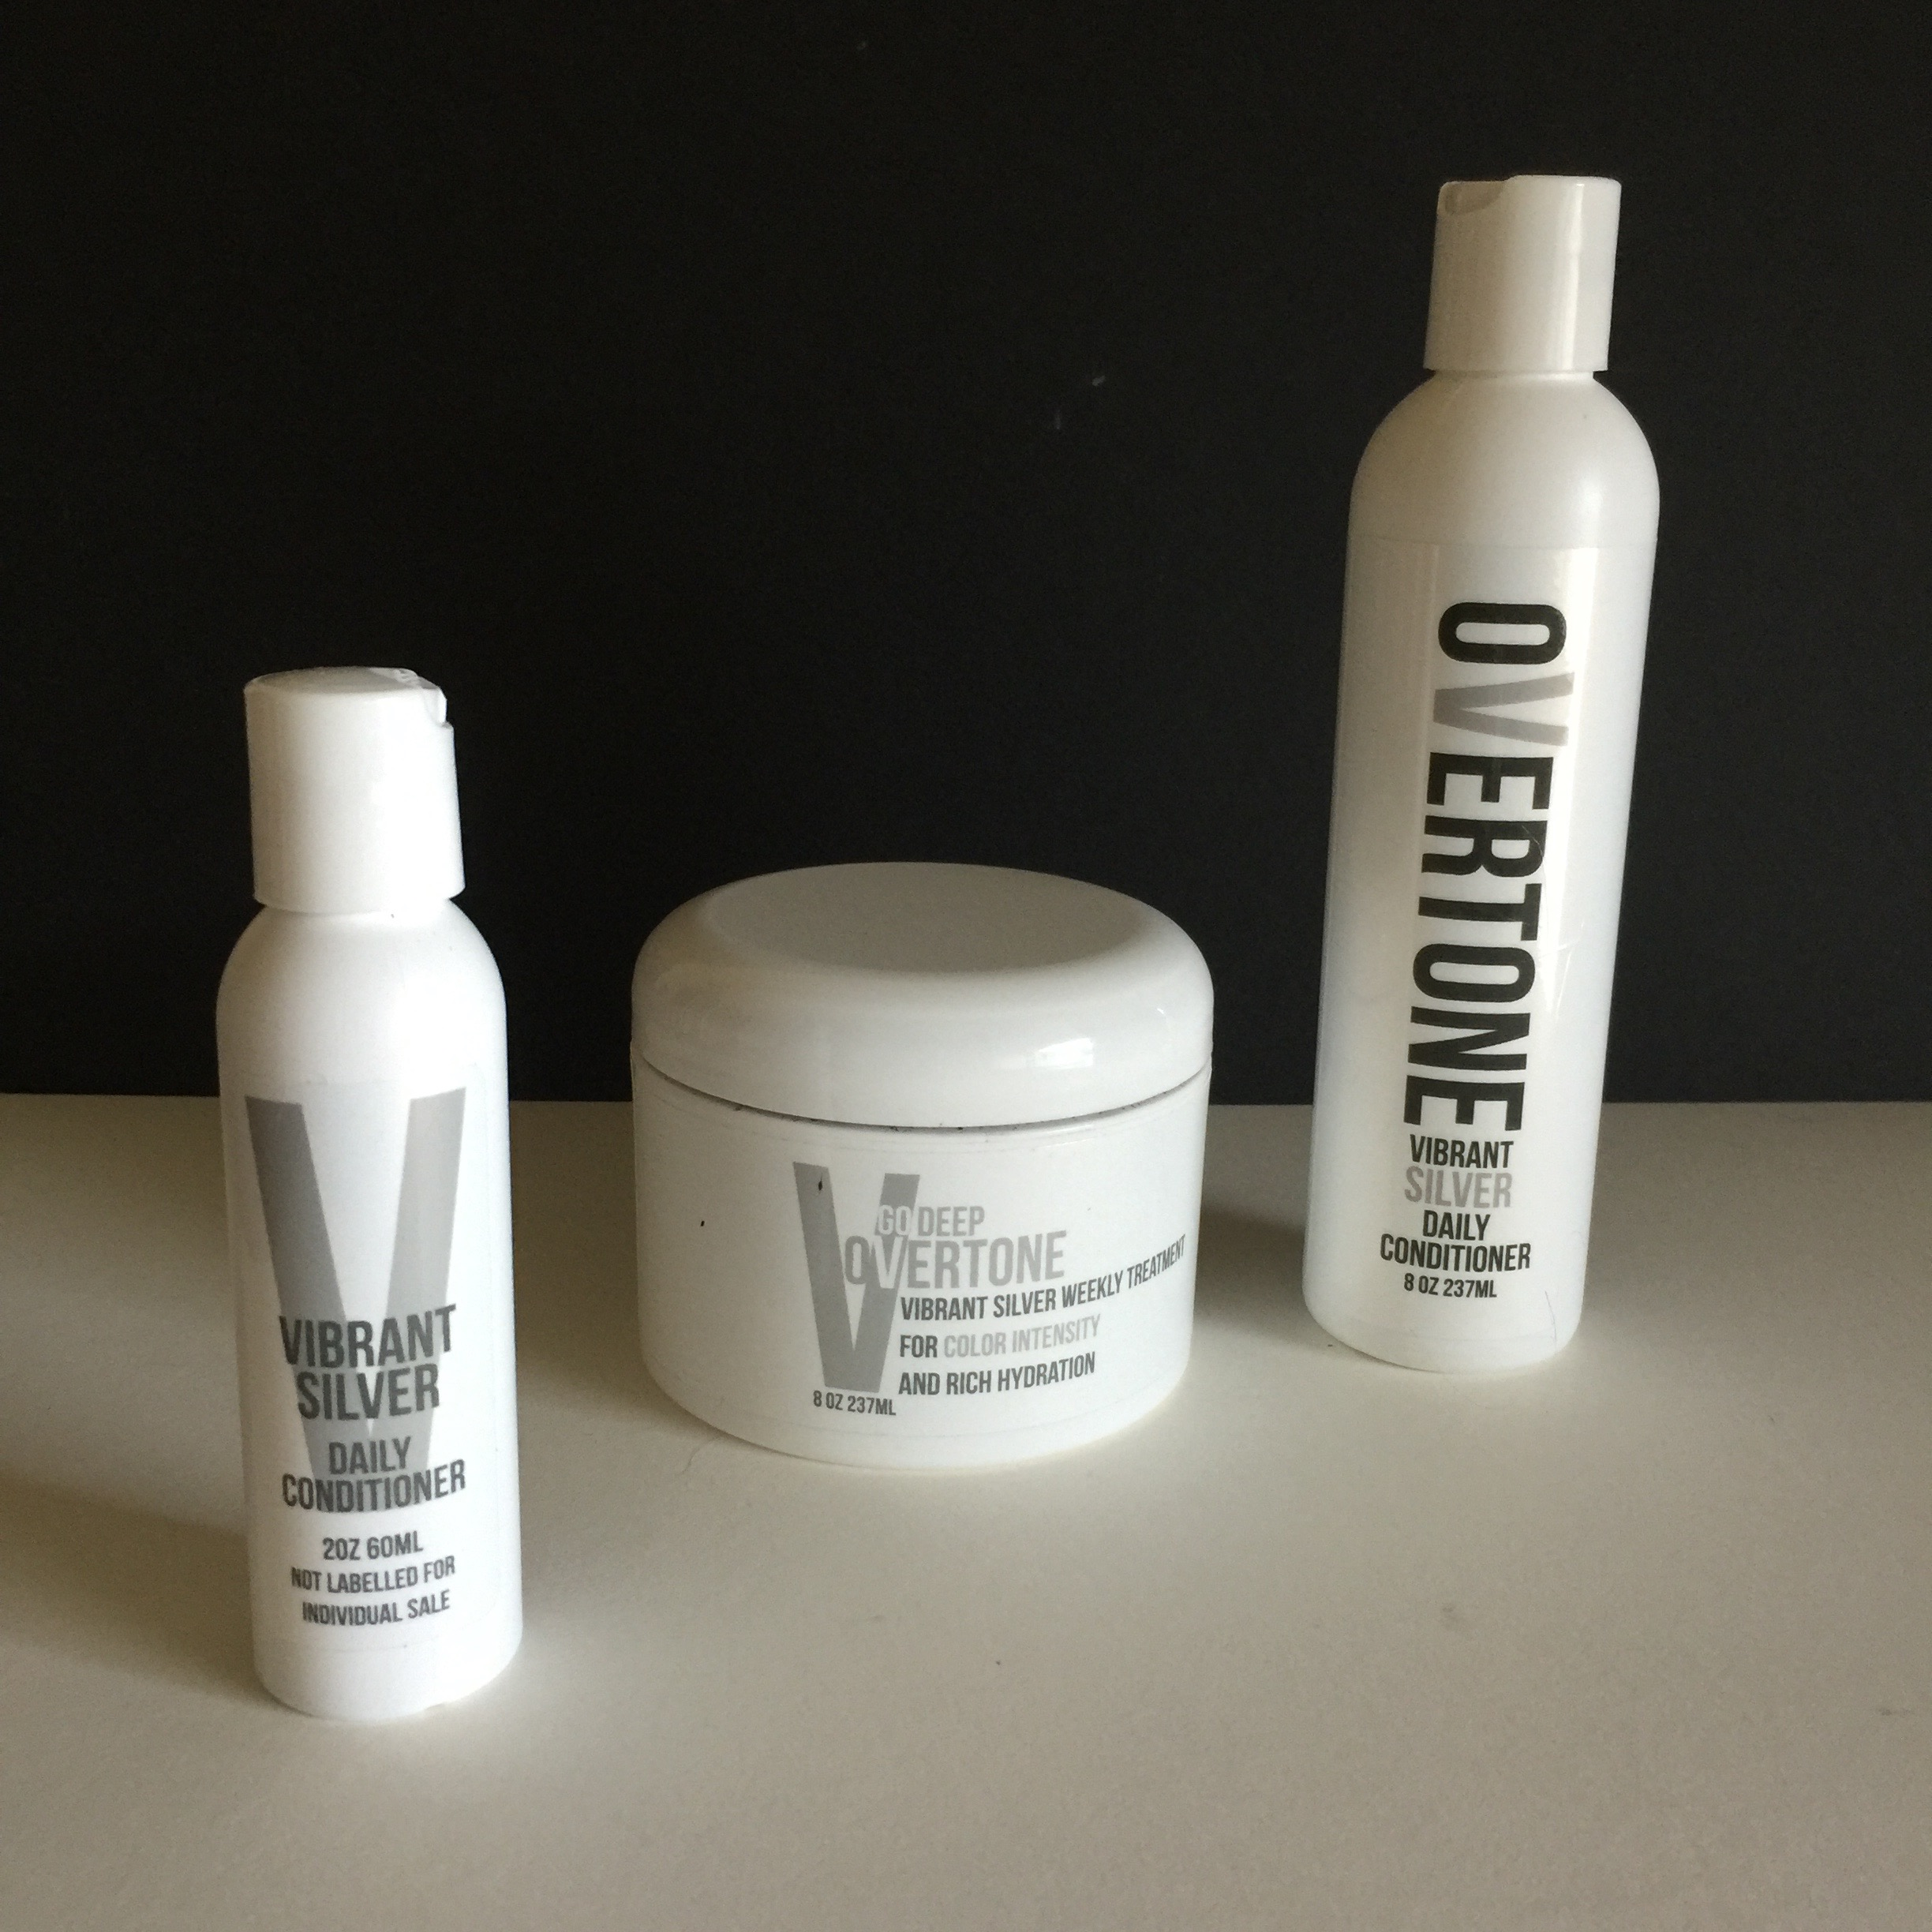 This is a shot of my OVERTONE complete set, I have already used the daily conditioner & weekly treatment